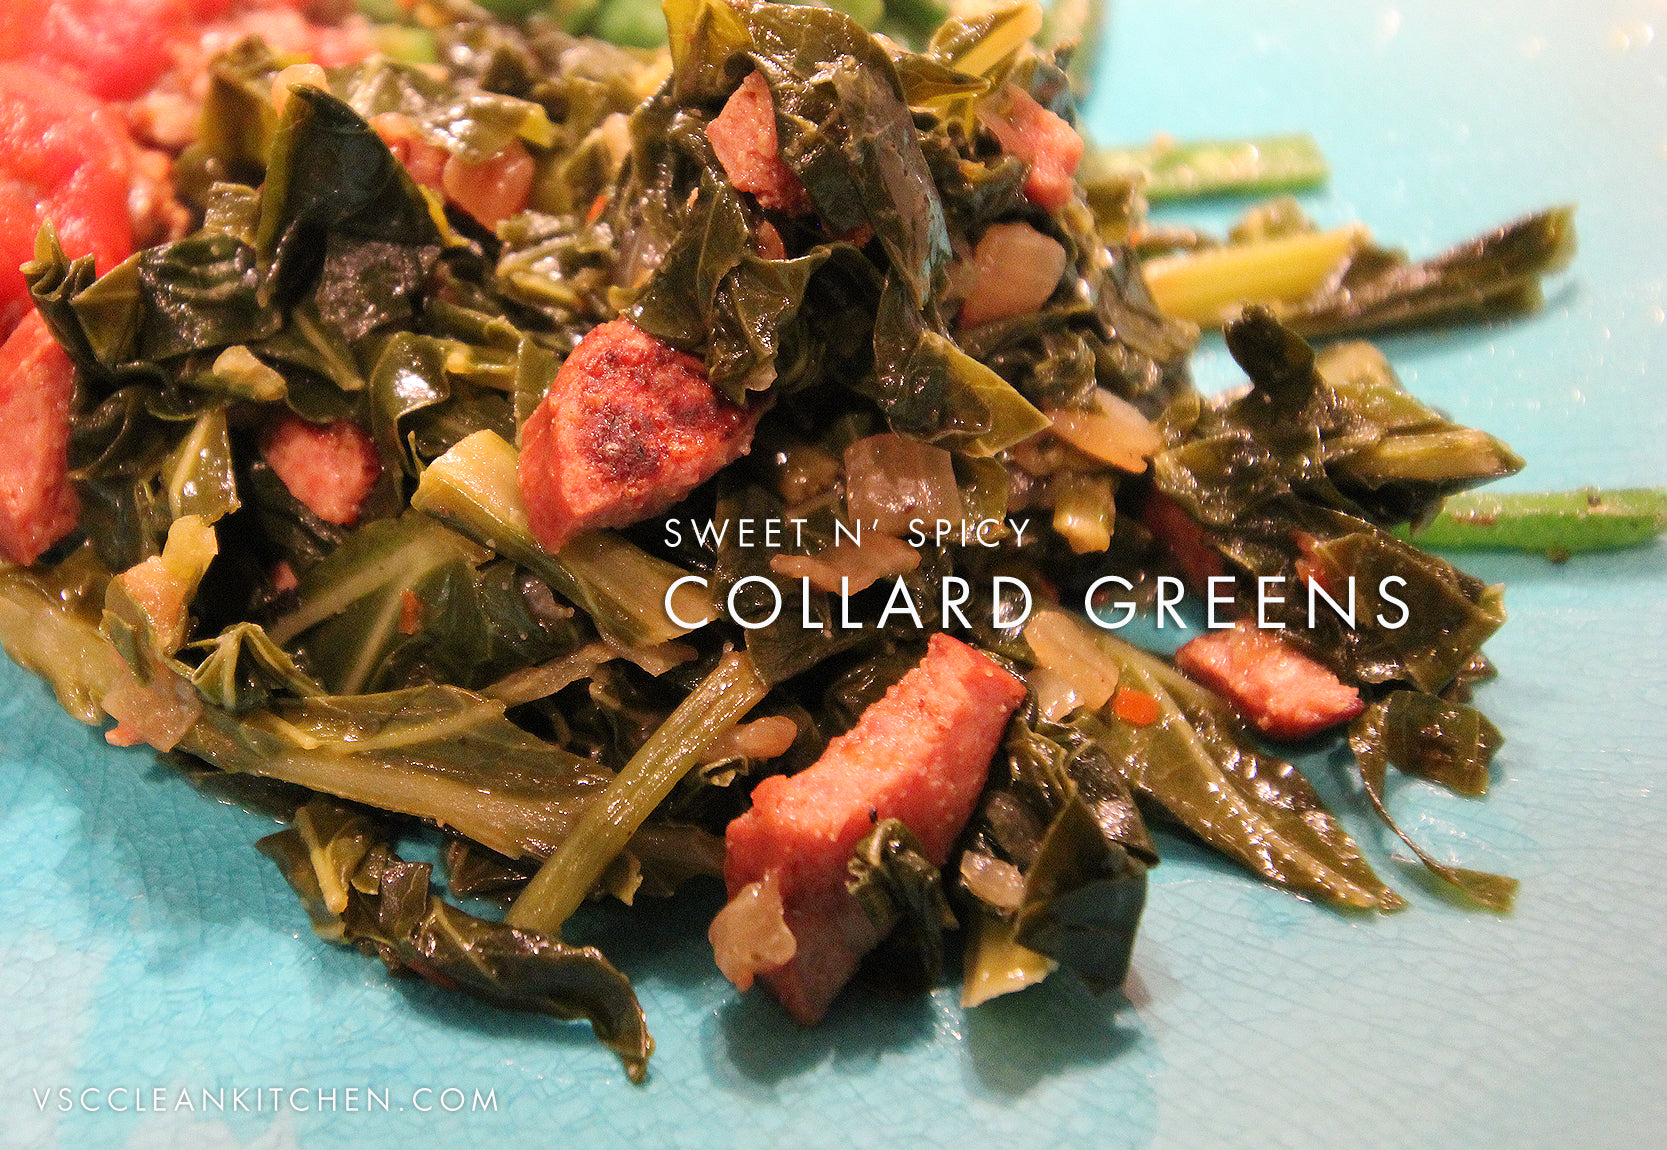 Sweet n' Spicy Collard Greens